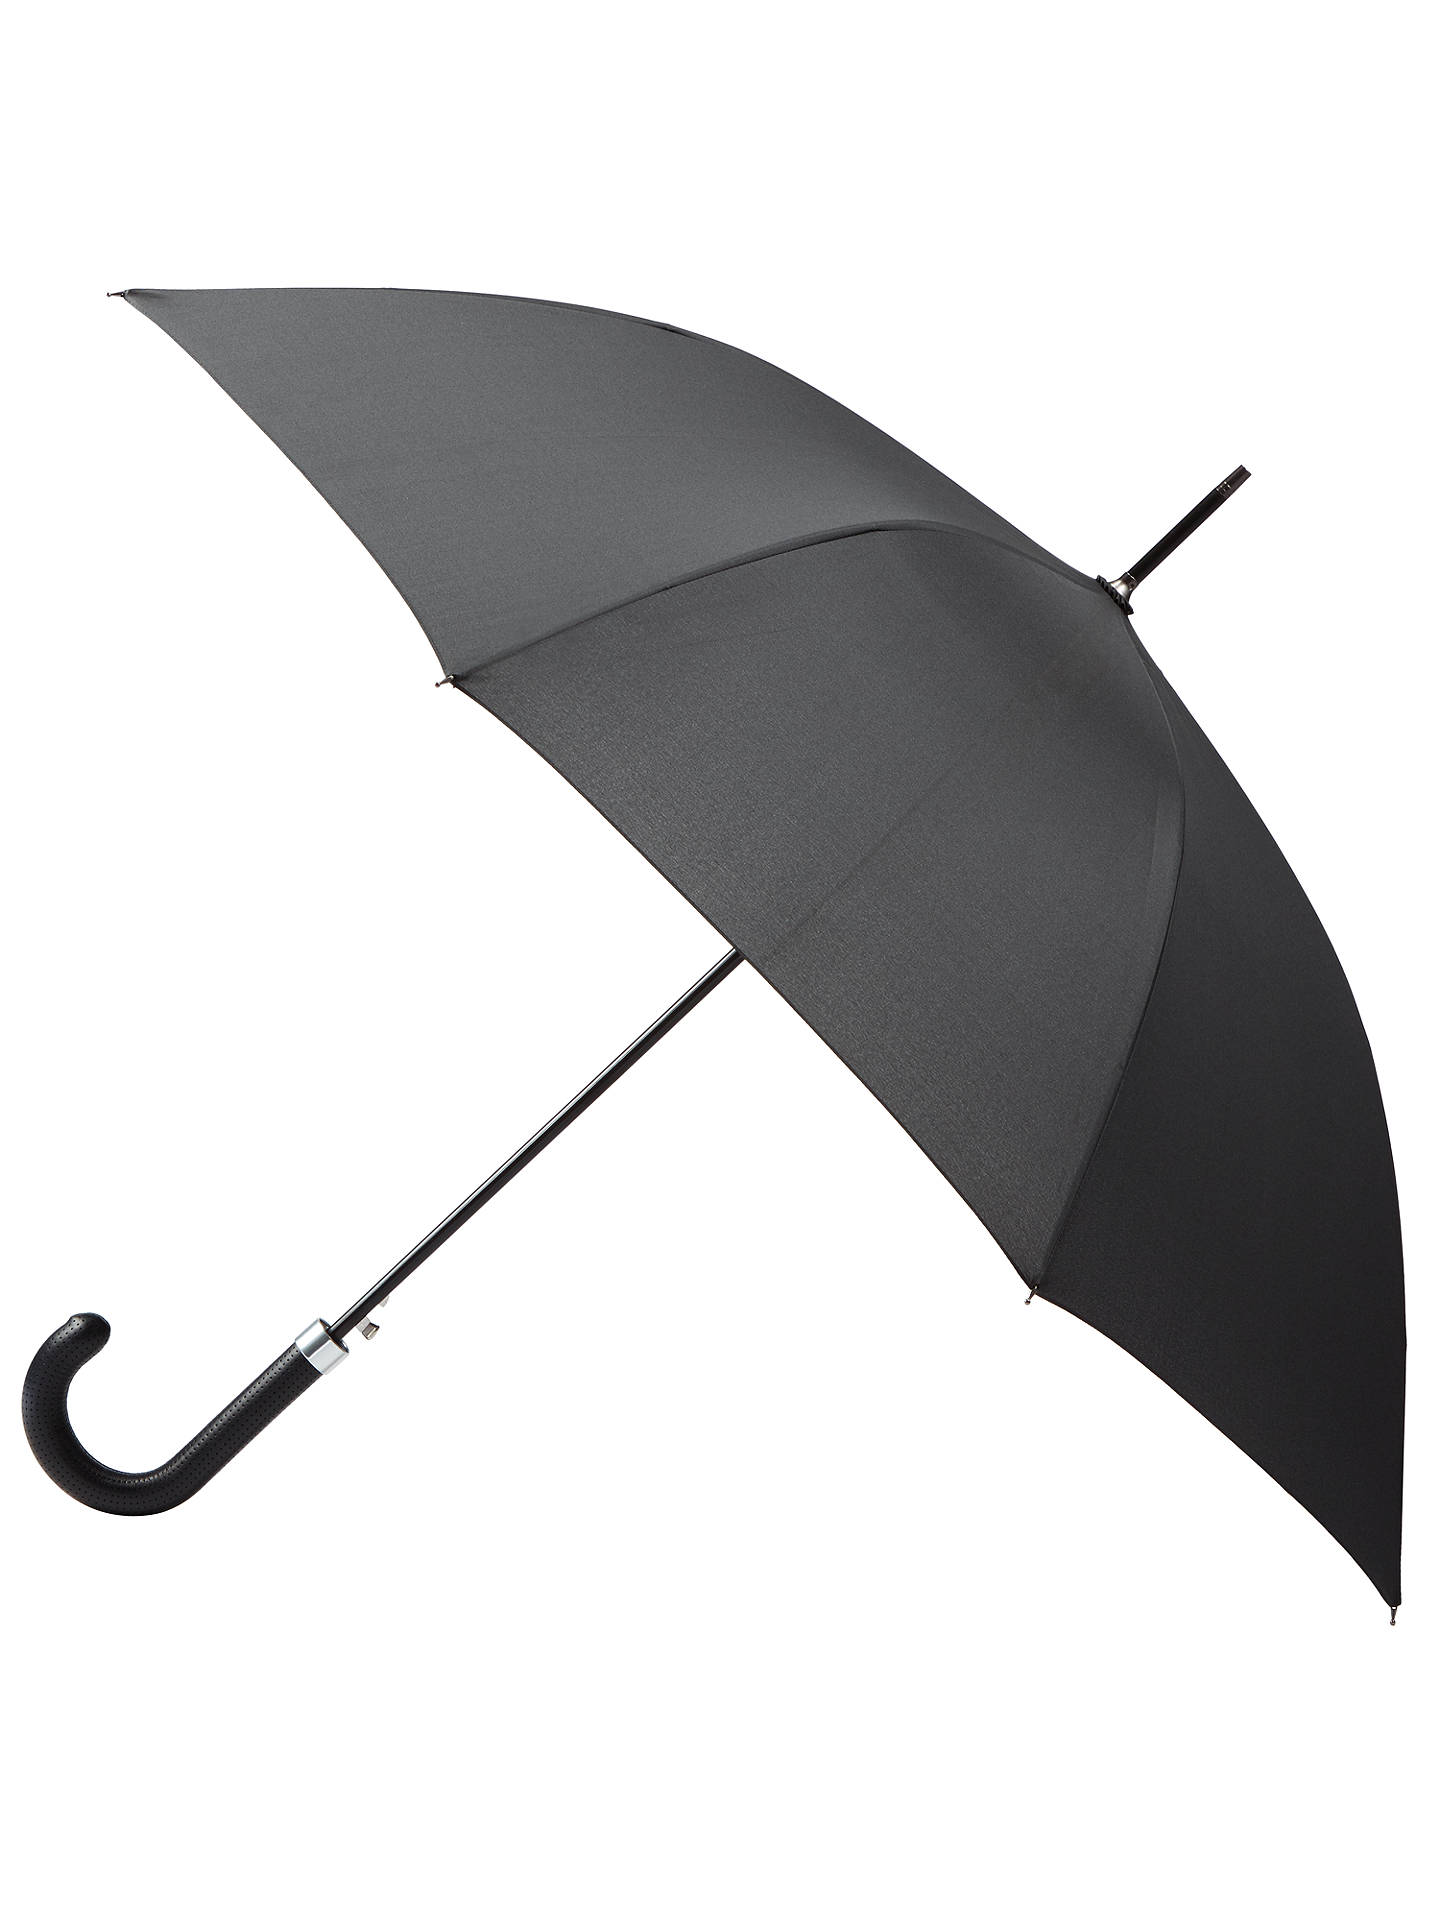 BuyKin Perforated Handle Umbrella, Black Online at johnlewis.com